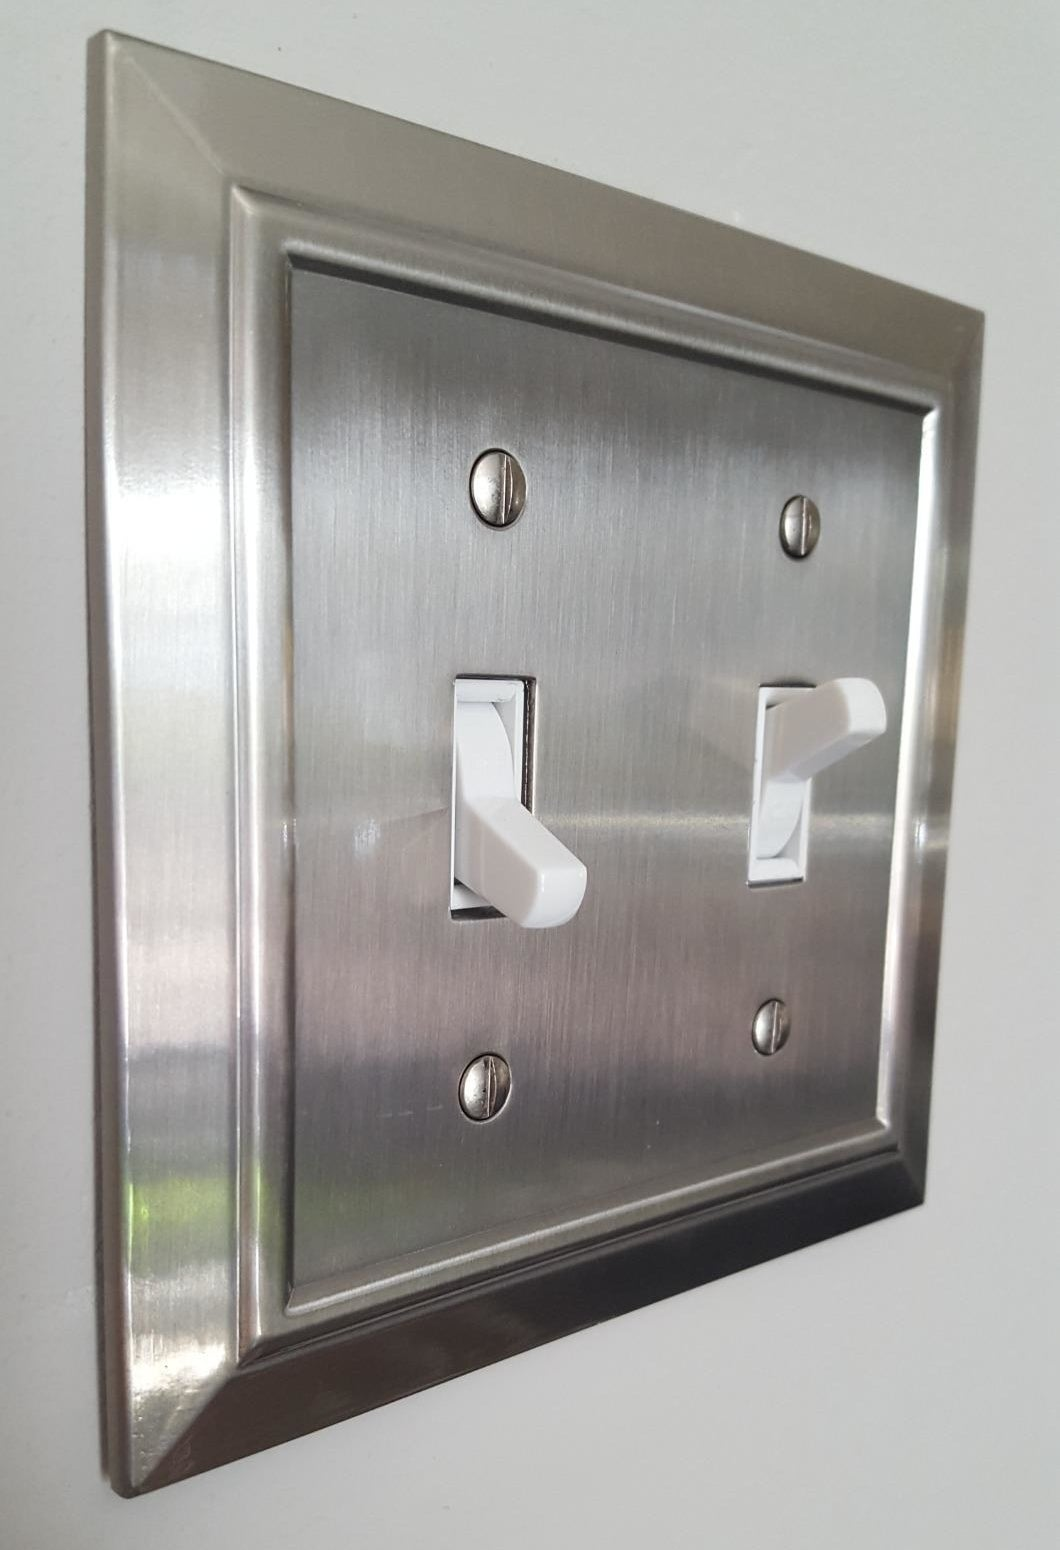 The silver-plated light switch cover